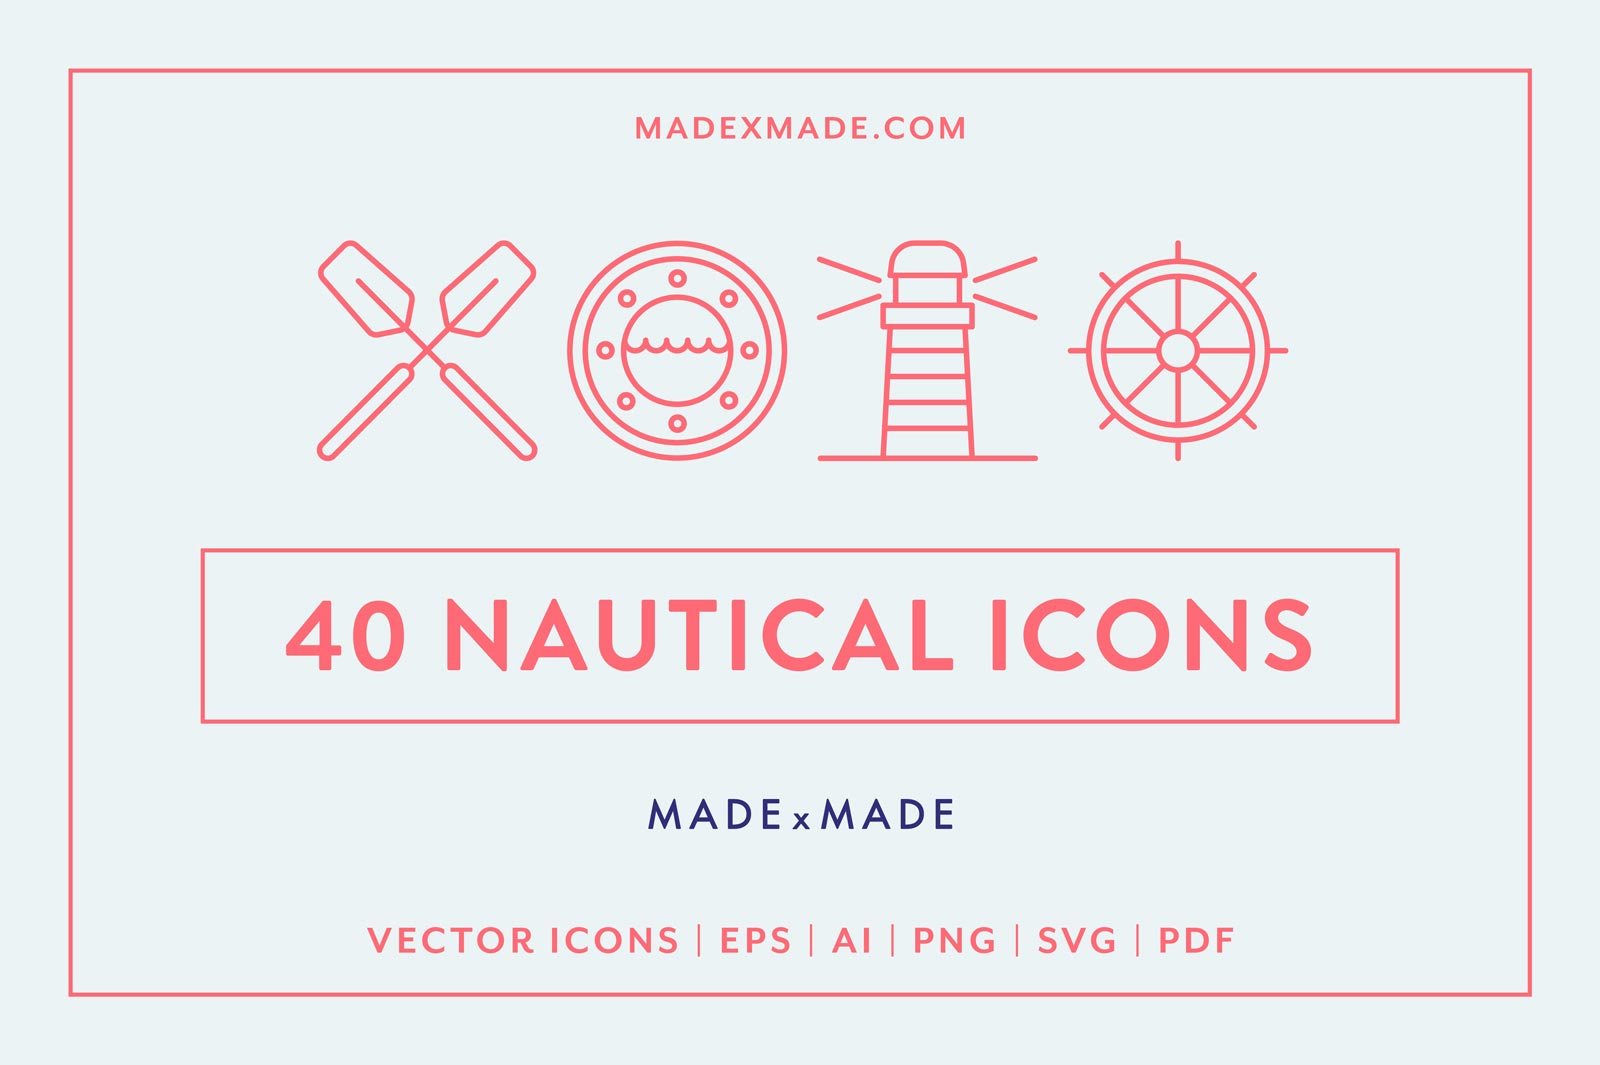 40 Nautical Themed Vector Line Icons